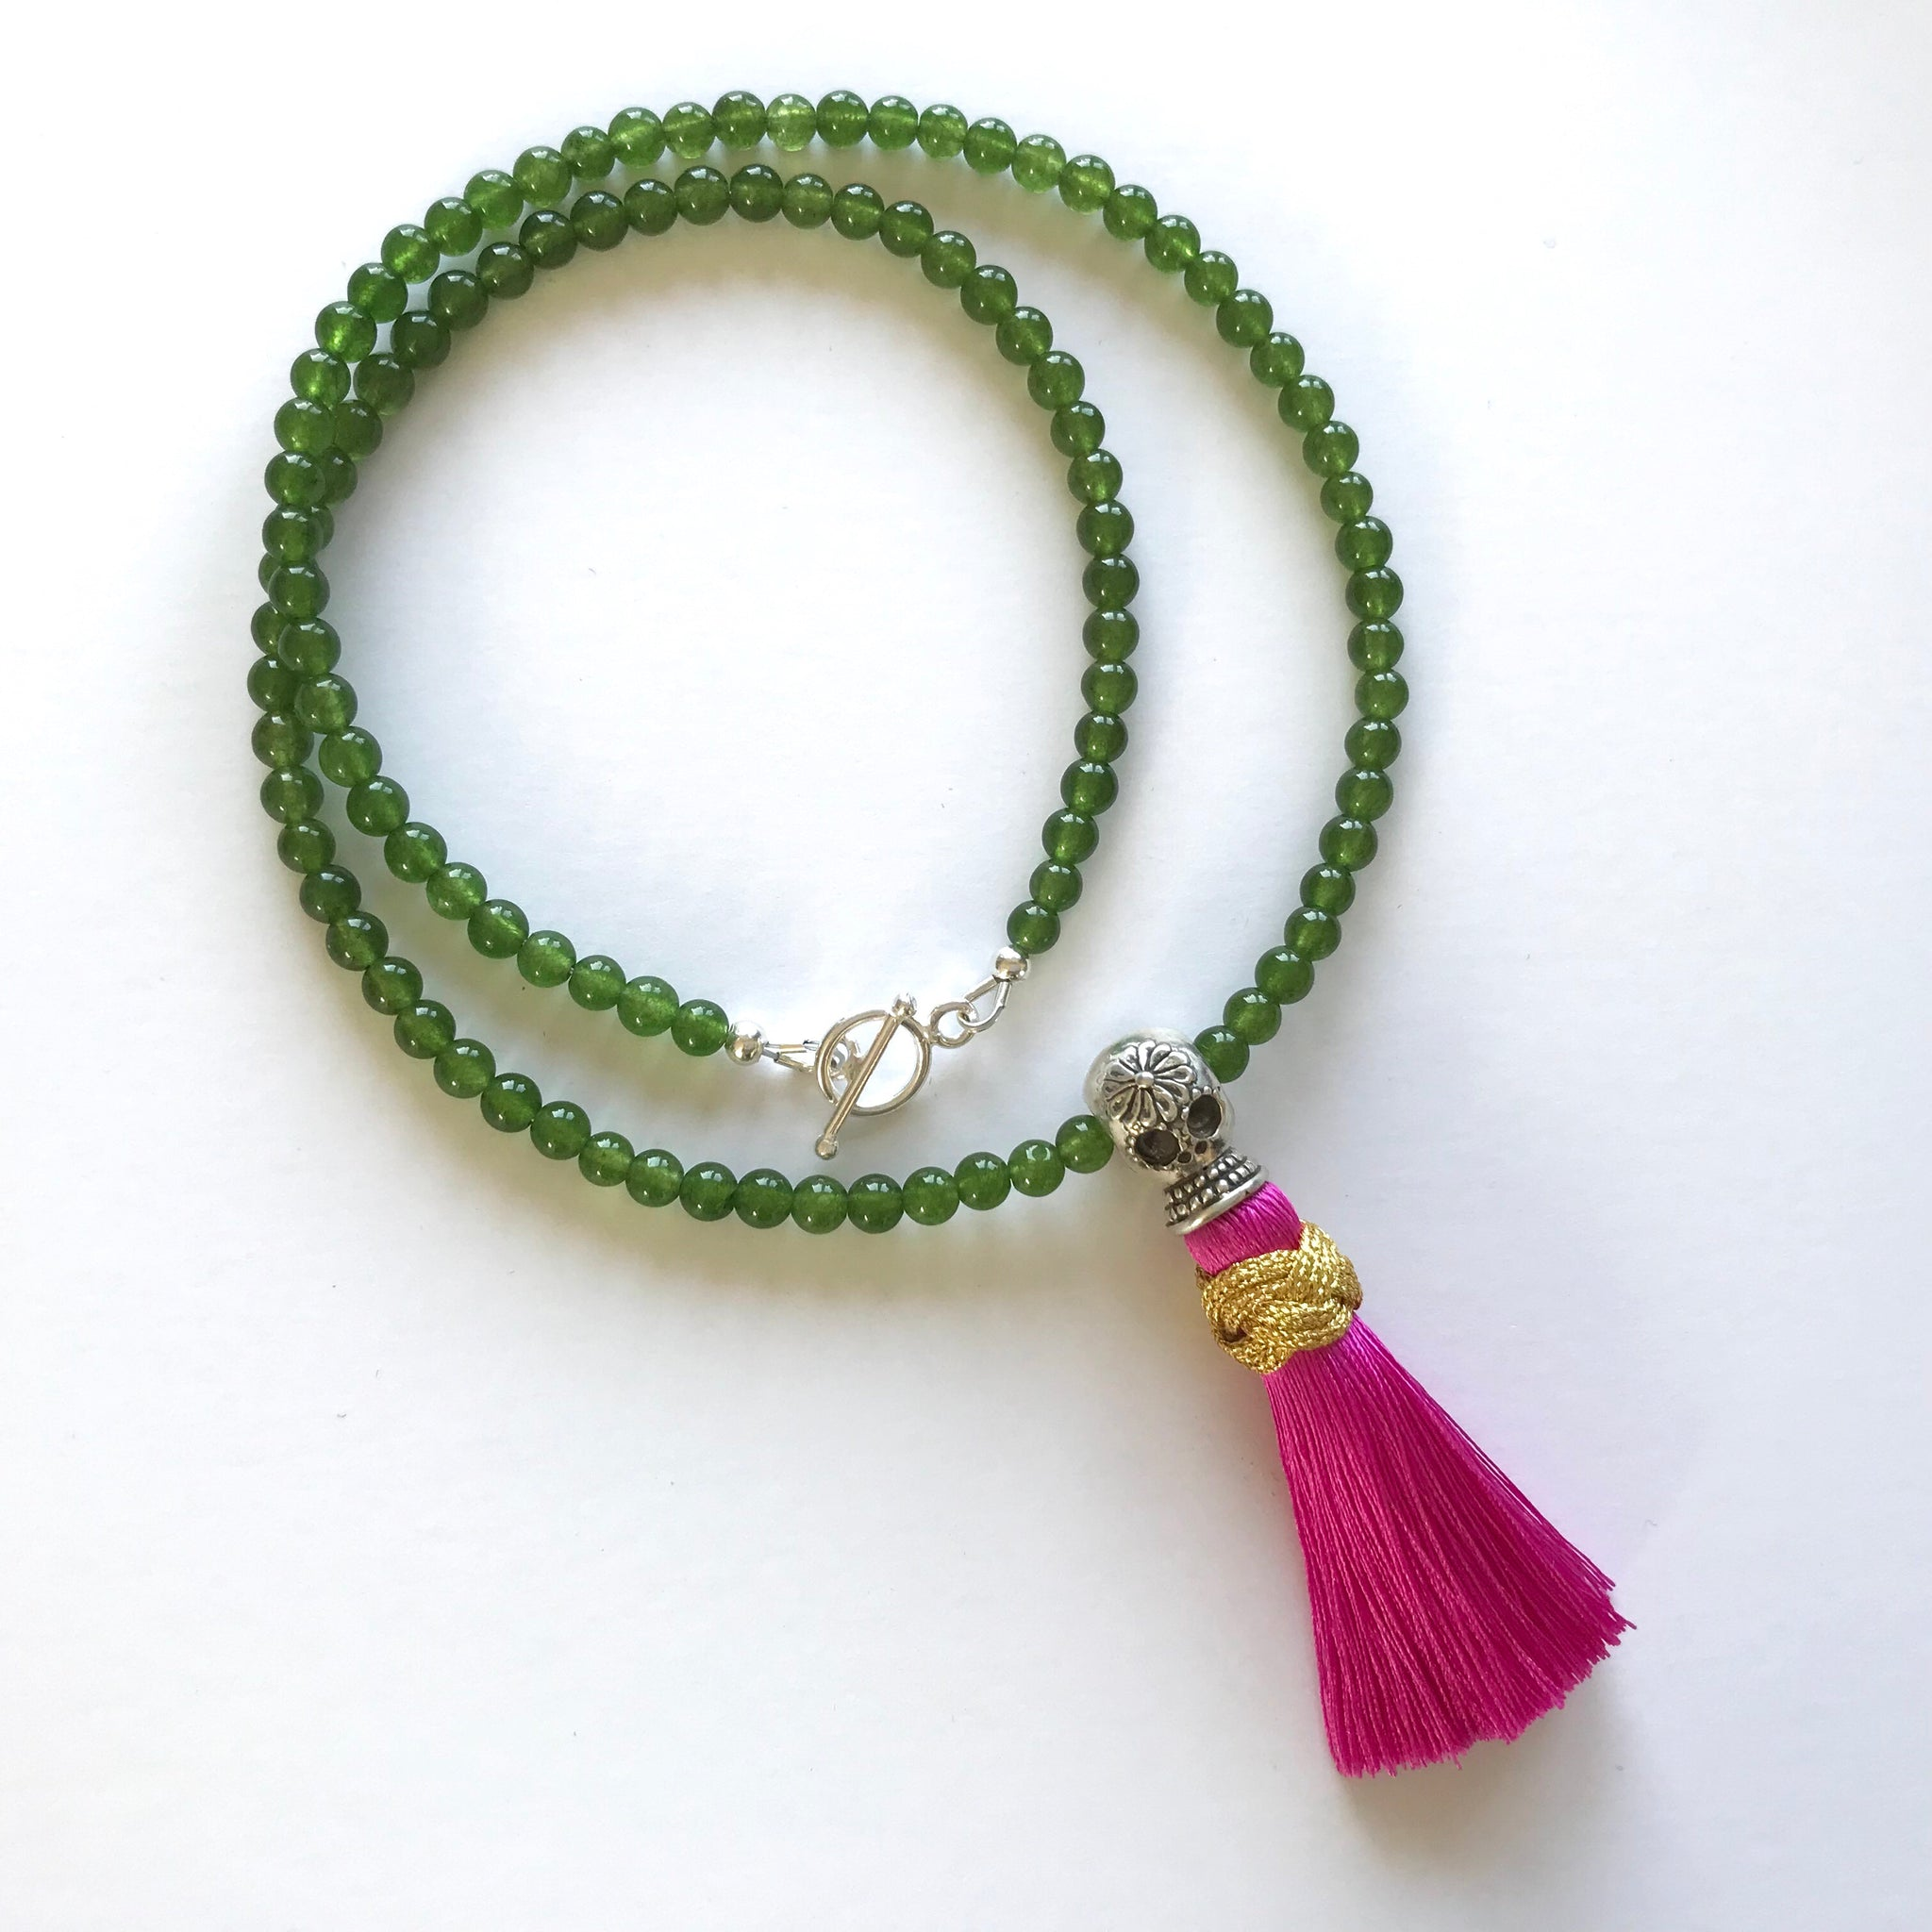 toggle watches link jewelry shipping free product overstock thailand and necklace beads handmade seashells jade chunky today